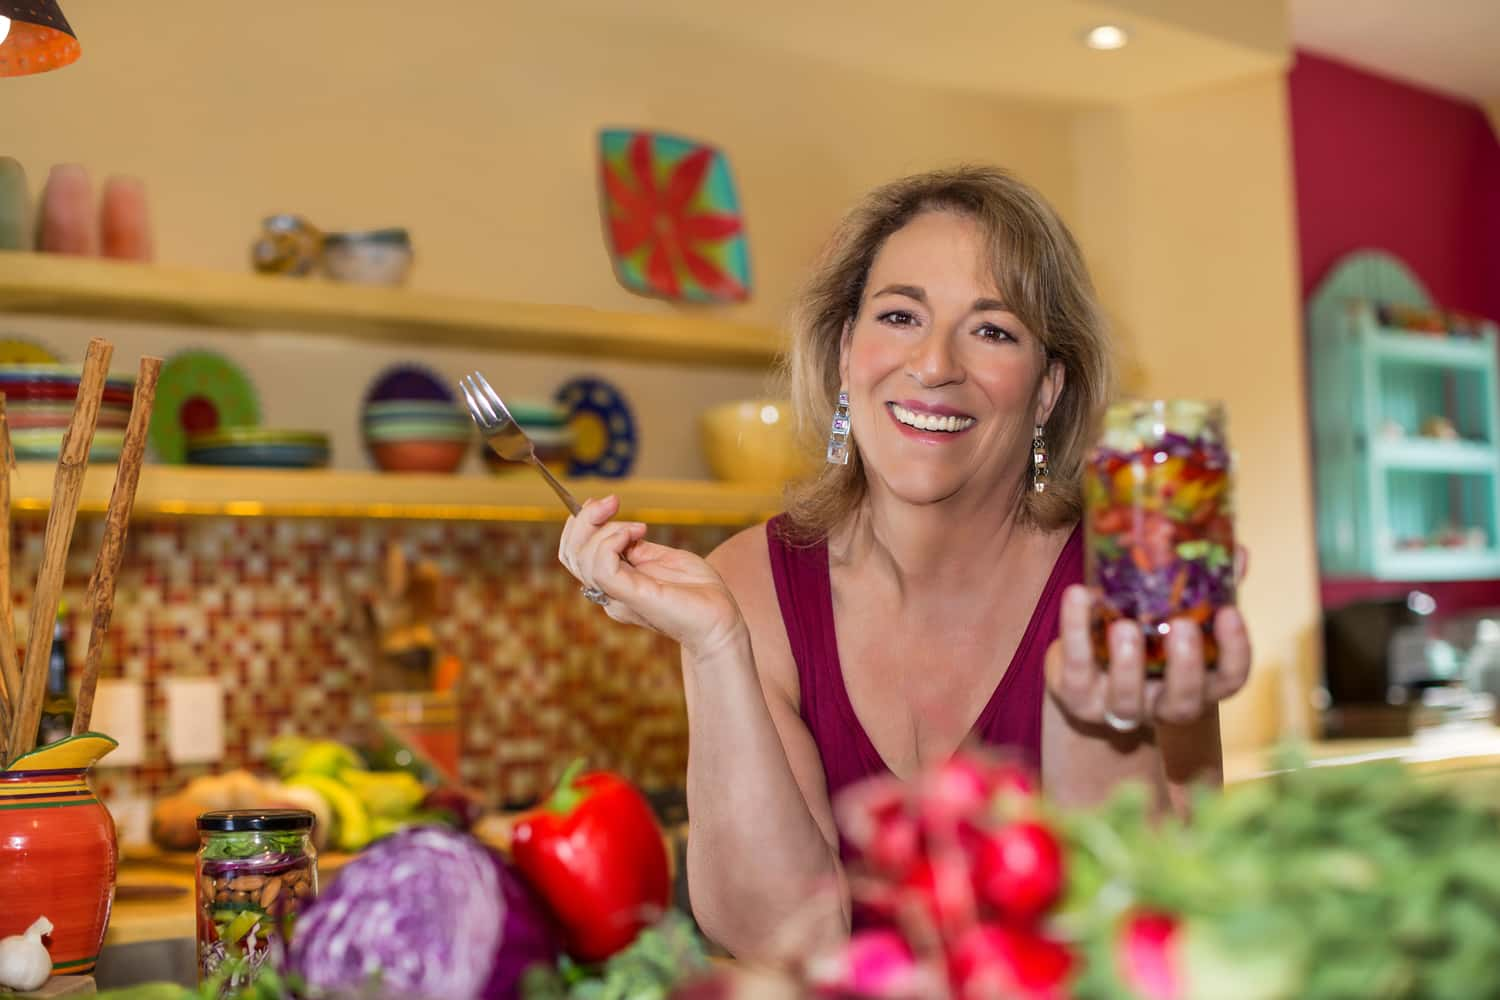 Dr Korn, Leslie Korn, Improve your mood with food, Dr. Leslie Korn